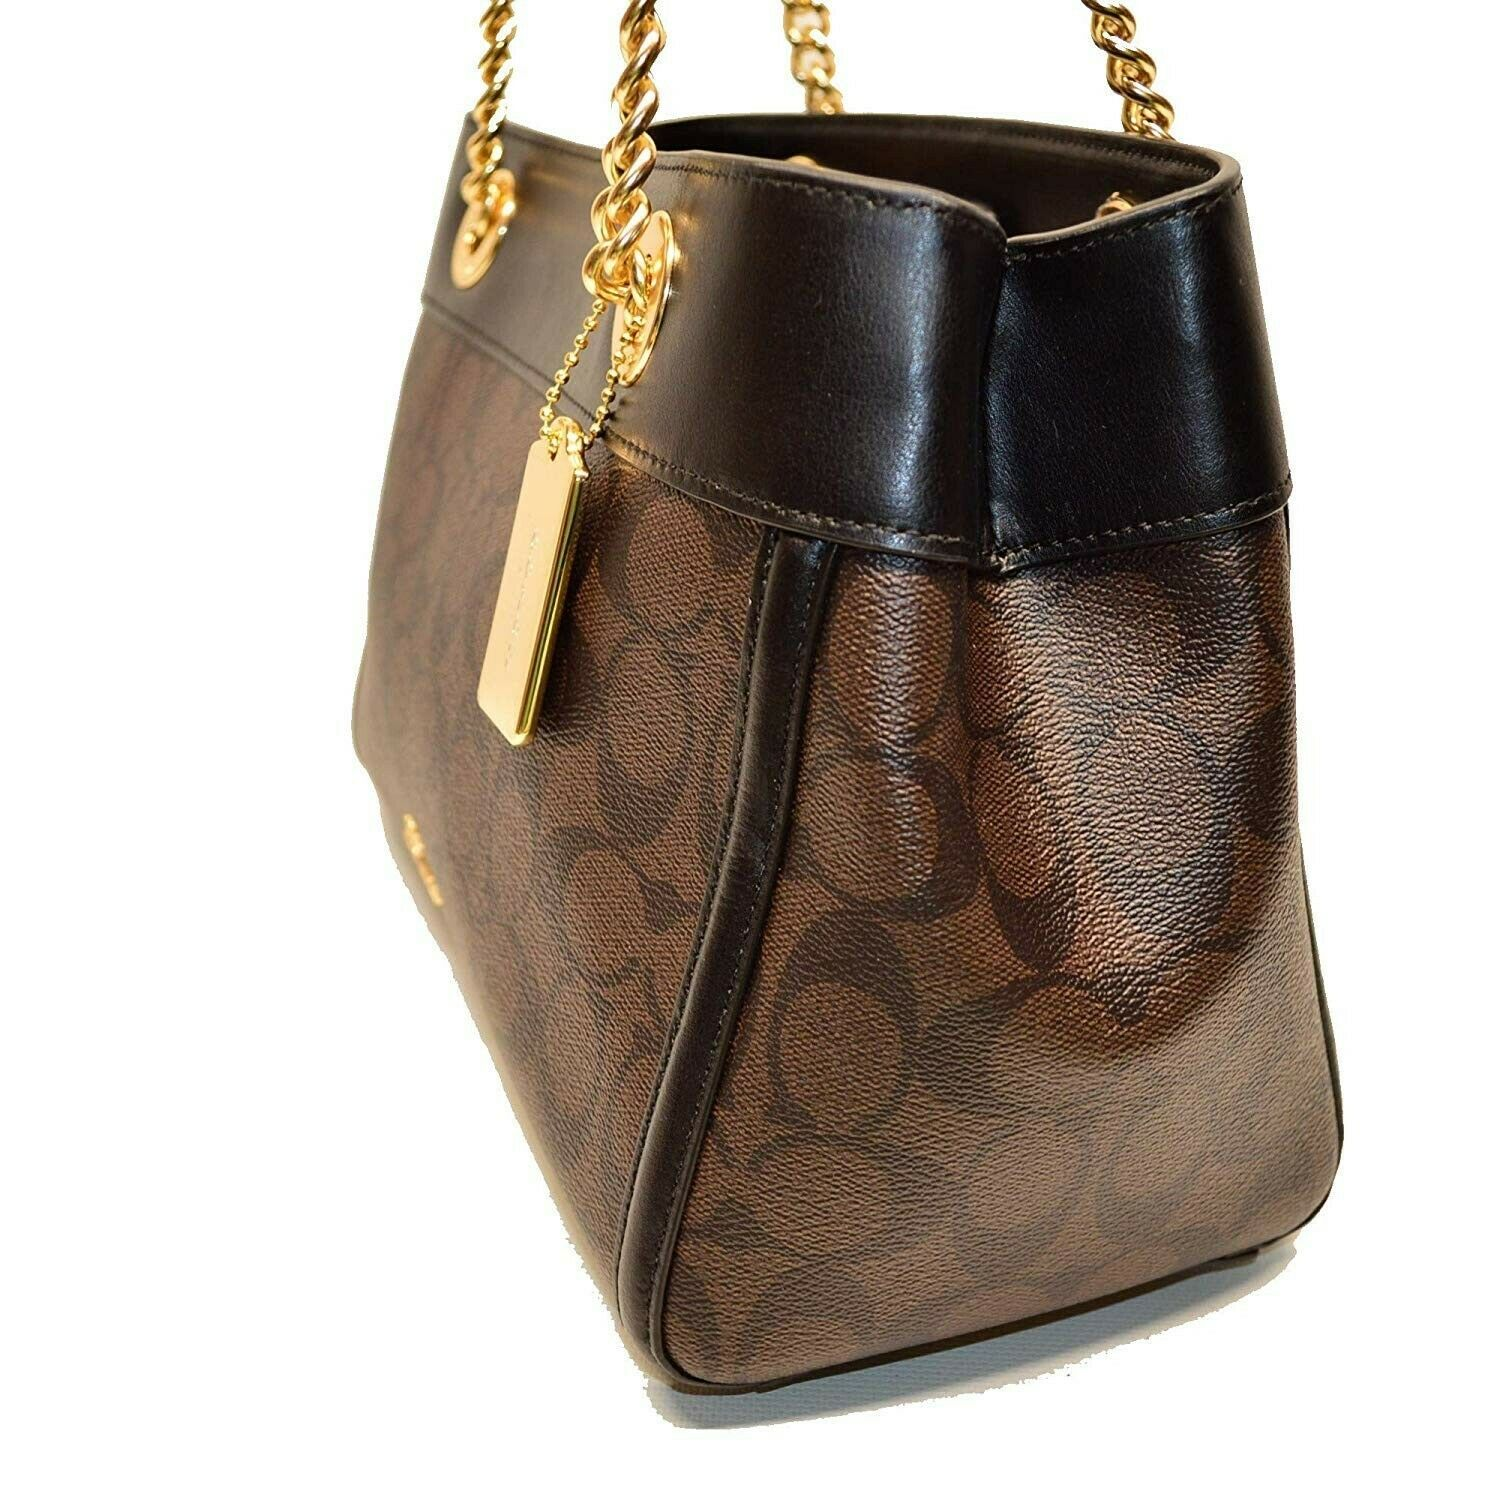 NWT COACH Brooke Chain Carryall Signature Shoulder Gold Chain Bag Brown F39711